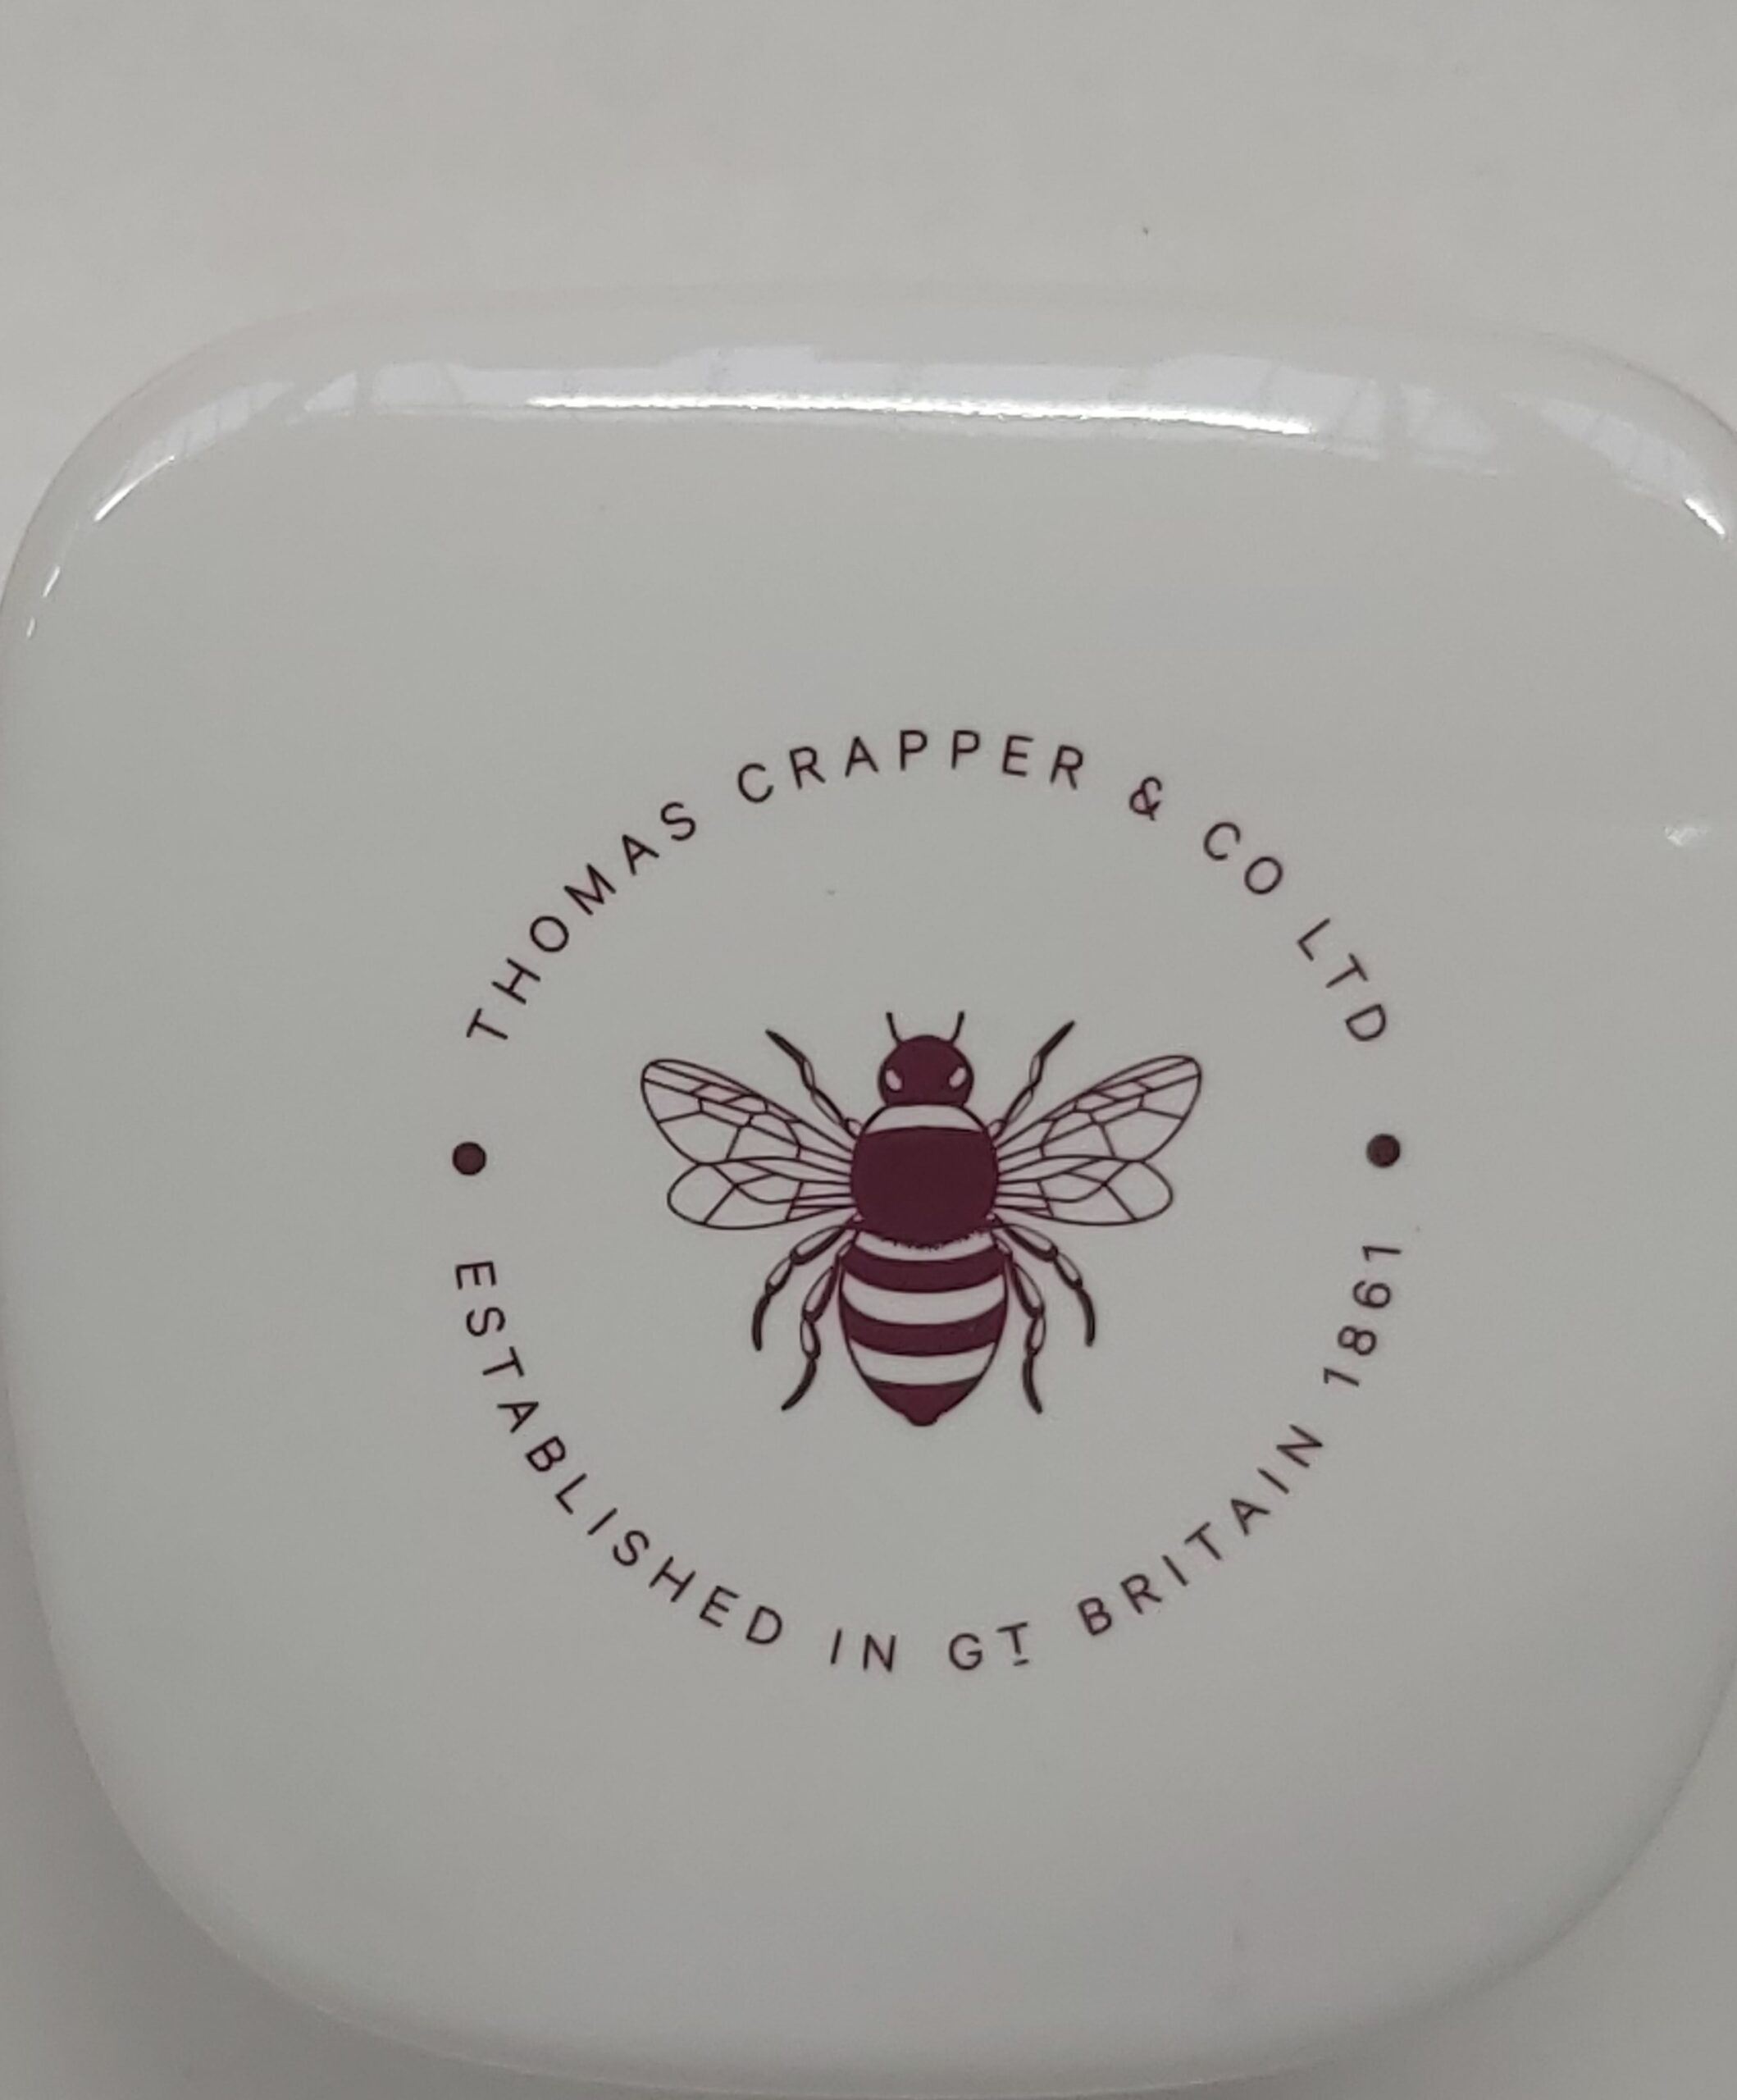 Urinal waste cover showing the 'Crapper Bee' logo